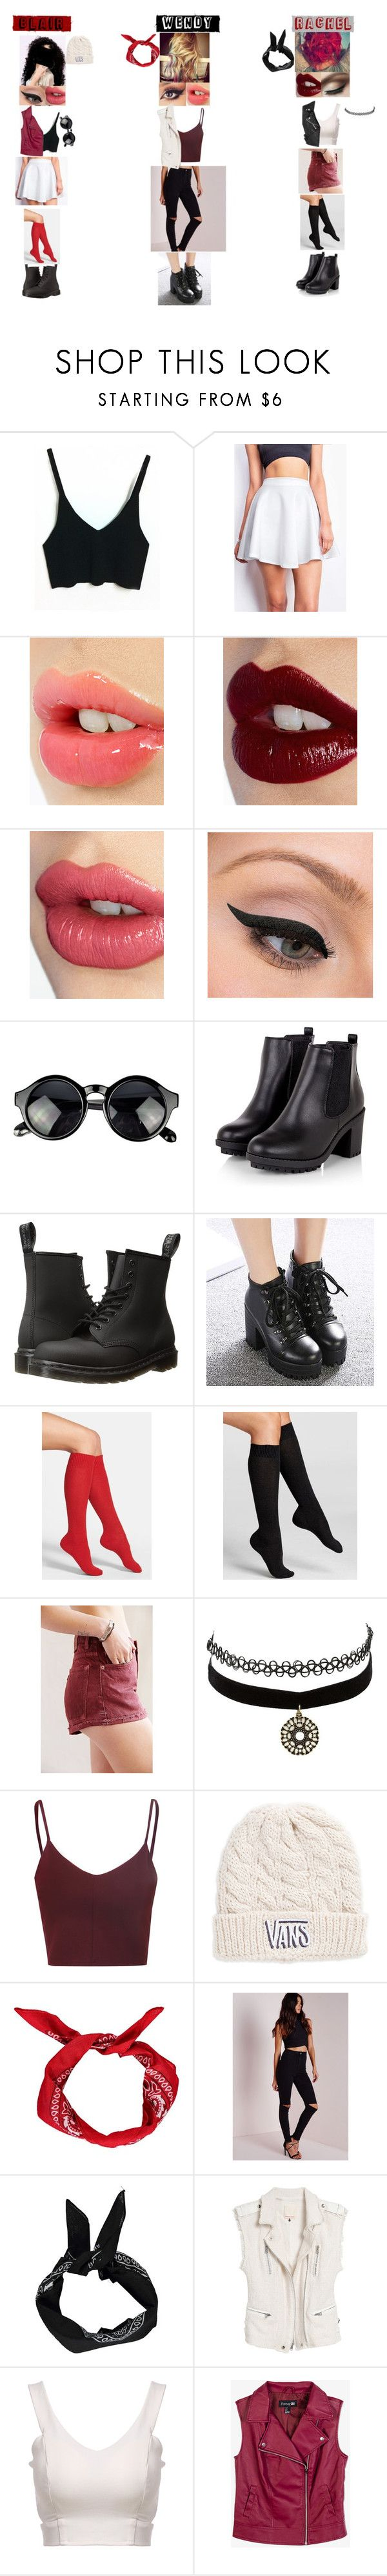 """""""Black,White,Red:A 90's Spirit"""" by glee2shake ❤ liked on Polyvore featuring Charlotte Tilbury, LORAC, Dr. Martens, Mancienne, Nordstrom, Falke, Urban Renewal, Charlotte Russe, Glamorous and Vans"""